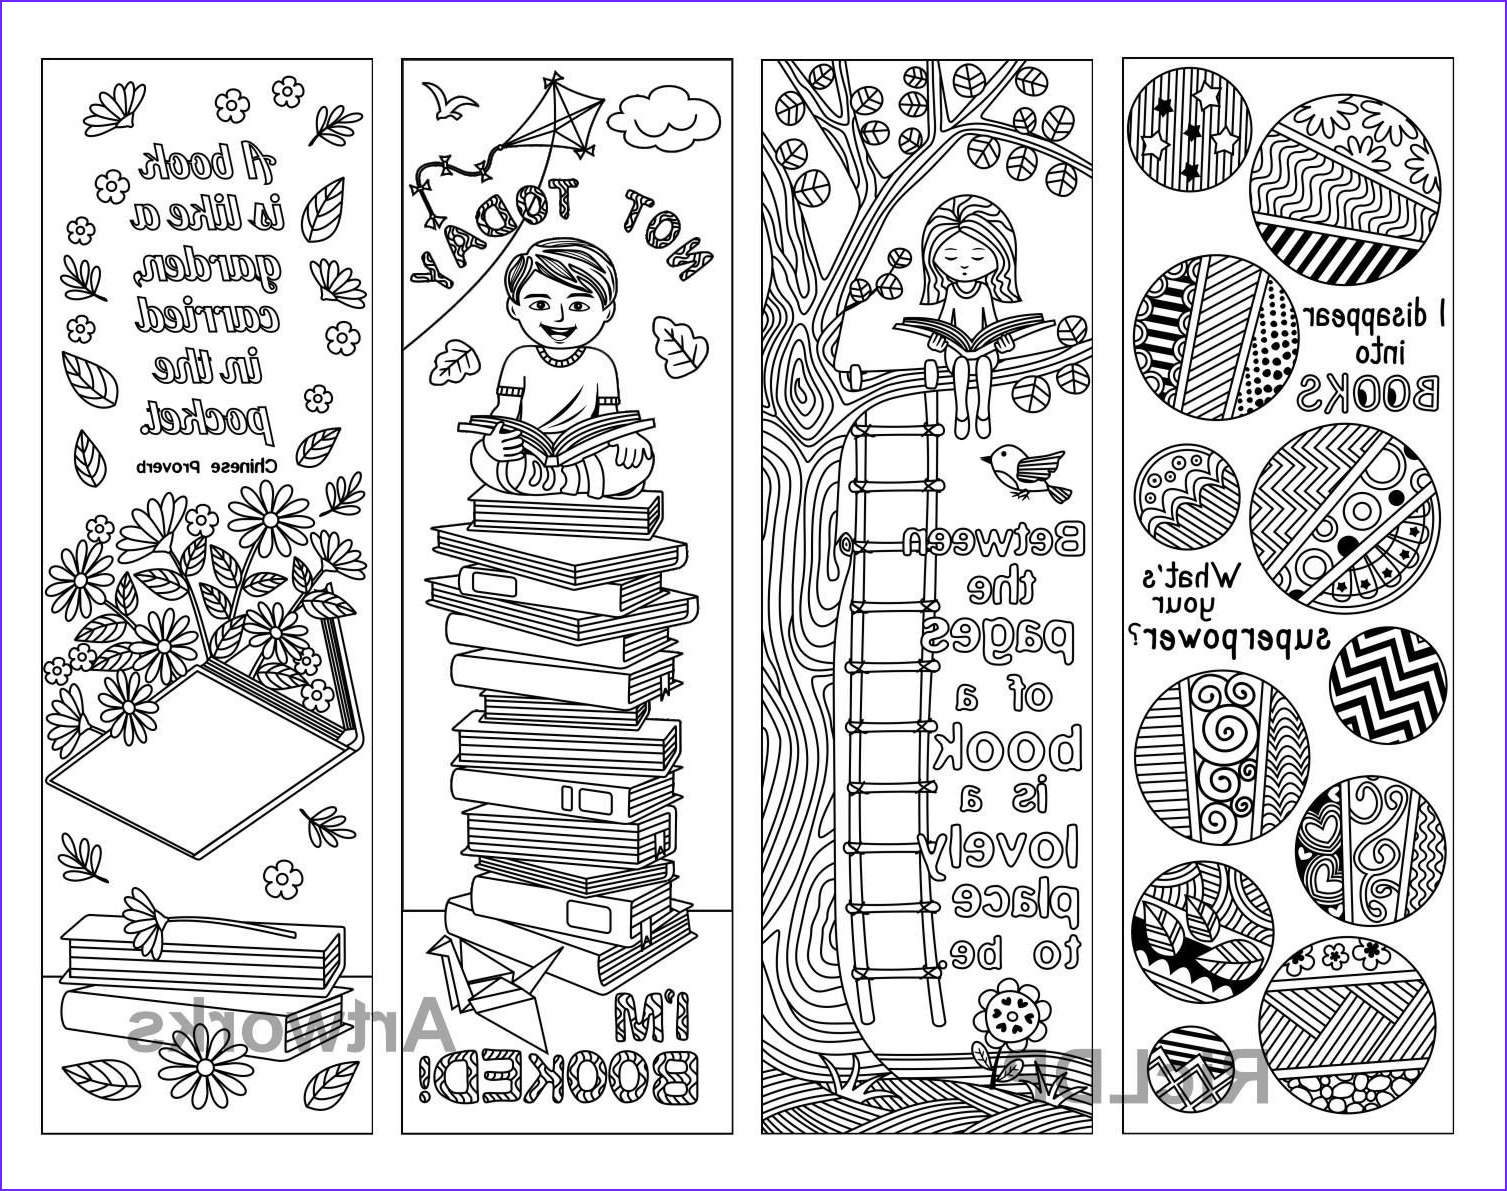 Coloring Book Markers Inspirational Images Set Of 8 Coloring Bookmarks with Quotes About Books and